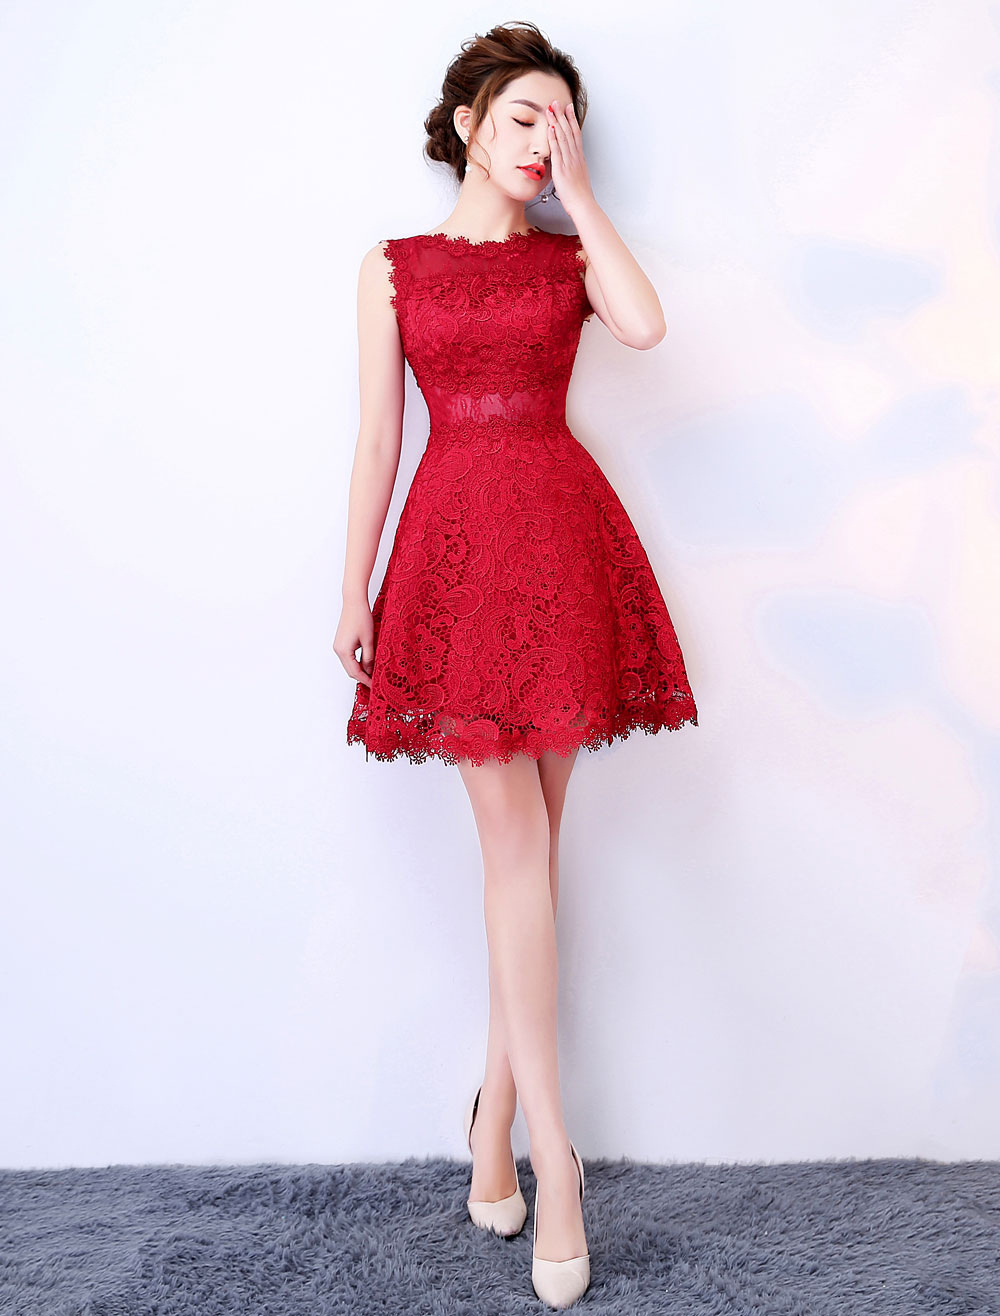 d7d48b6a3a Burgundy Graduation Dresses Lace Short Prom Dress Sleeveless Mini Cute  Party Dress